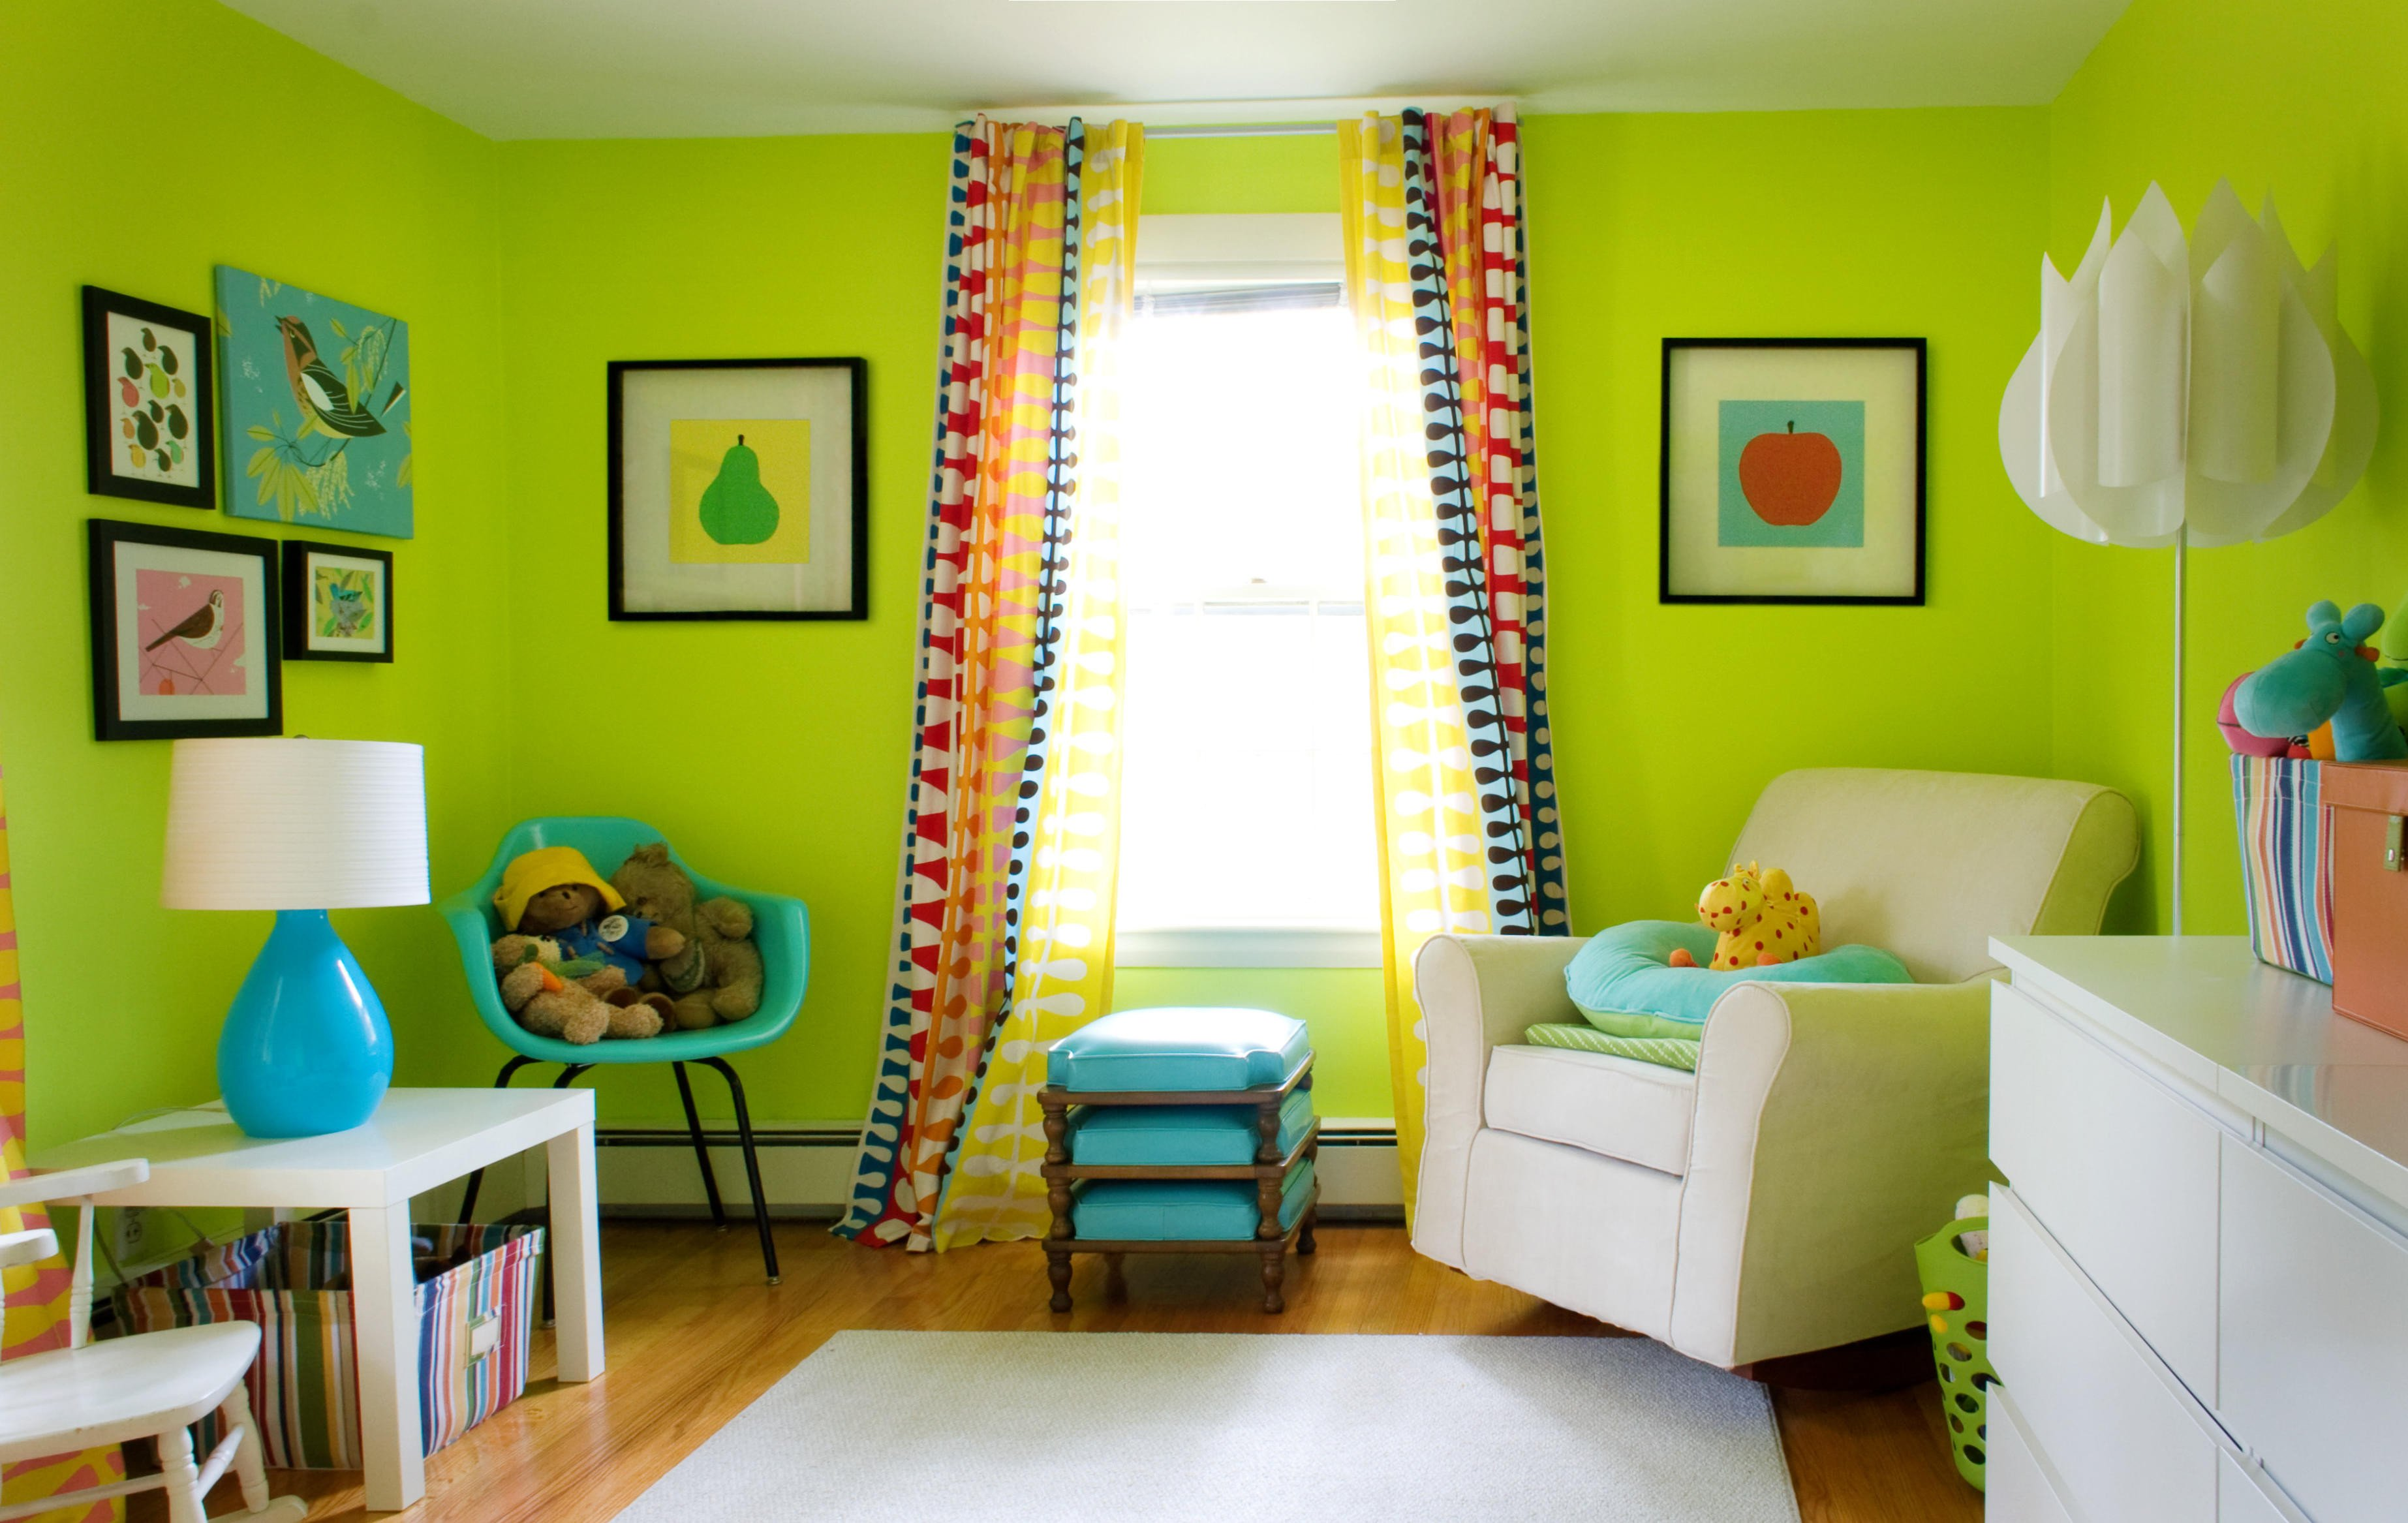 Lime Green Living Room Decor Awesome Lime Green Living Room Design with Fresh Colors Home